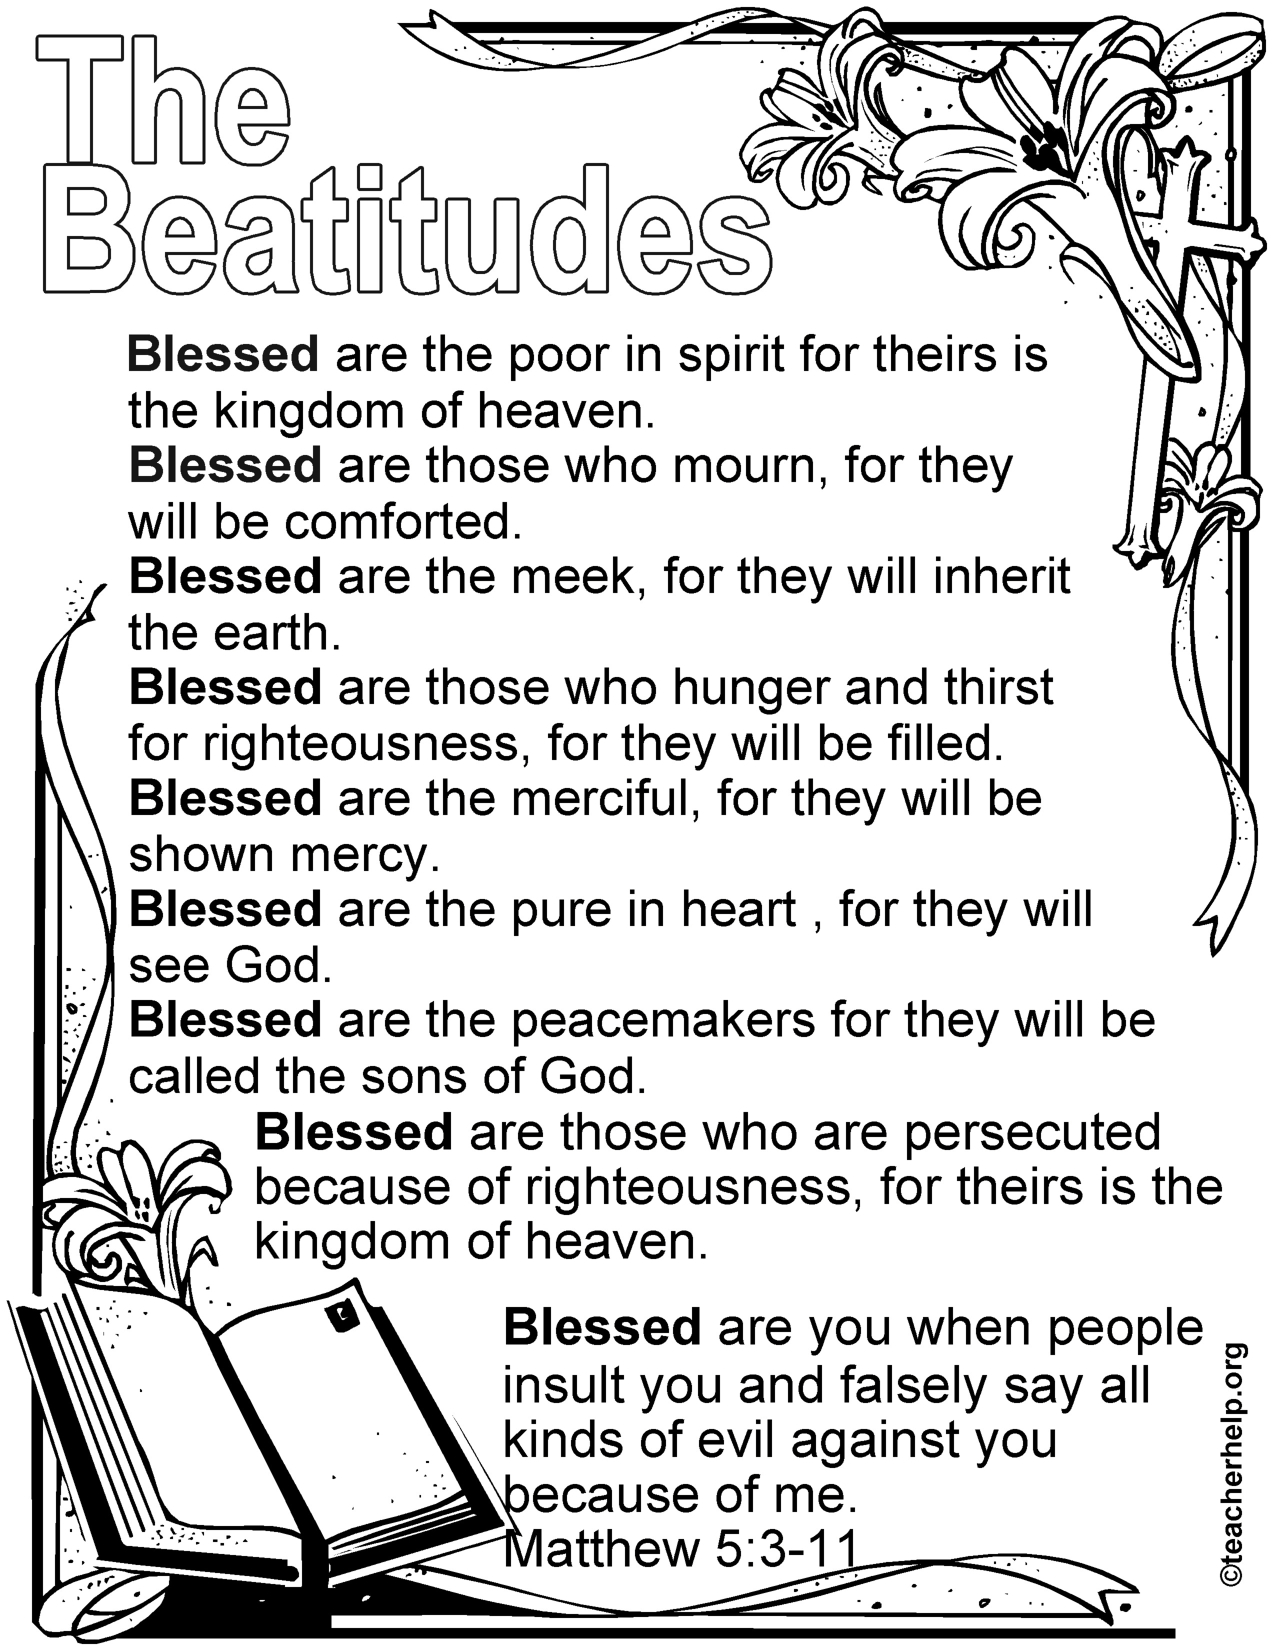 Image Result For Beatitudes For Kids Free Printable | Kids - Free Printable Children's Church Curriculum